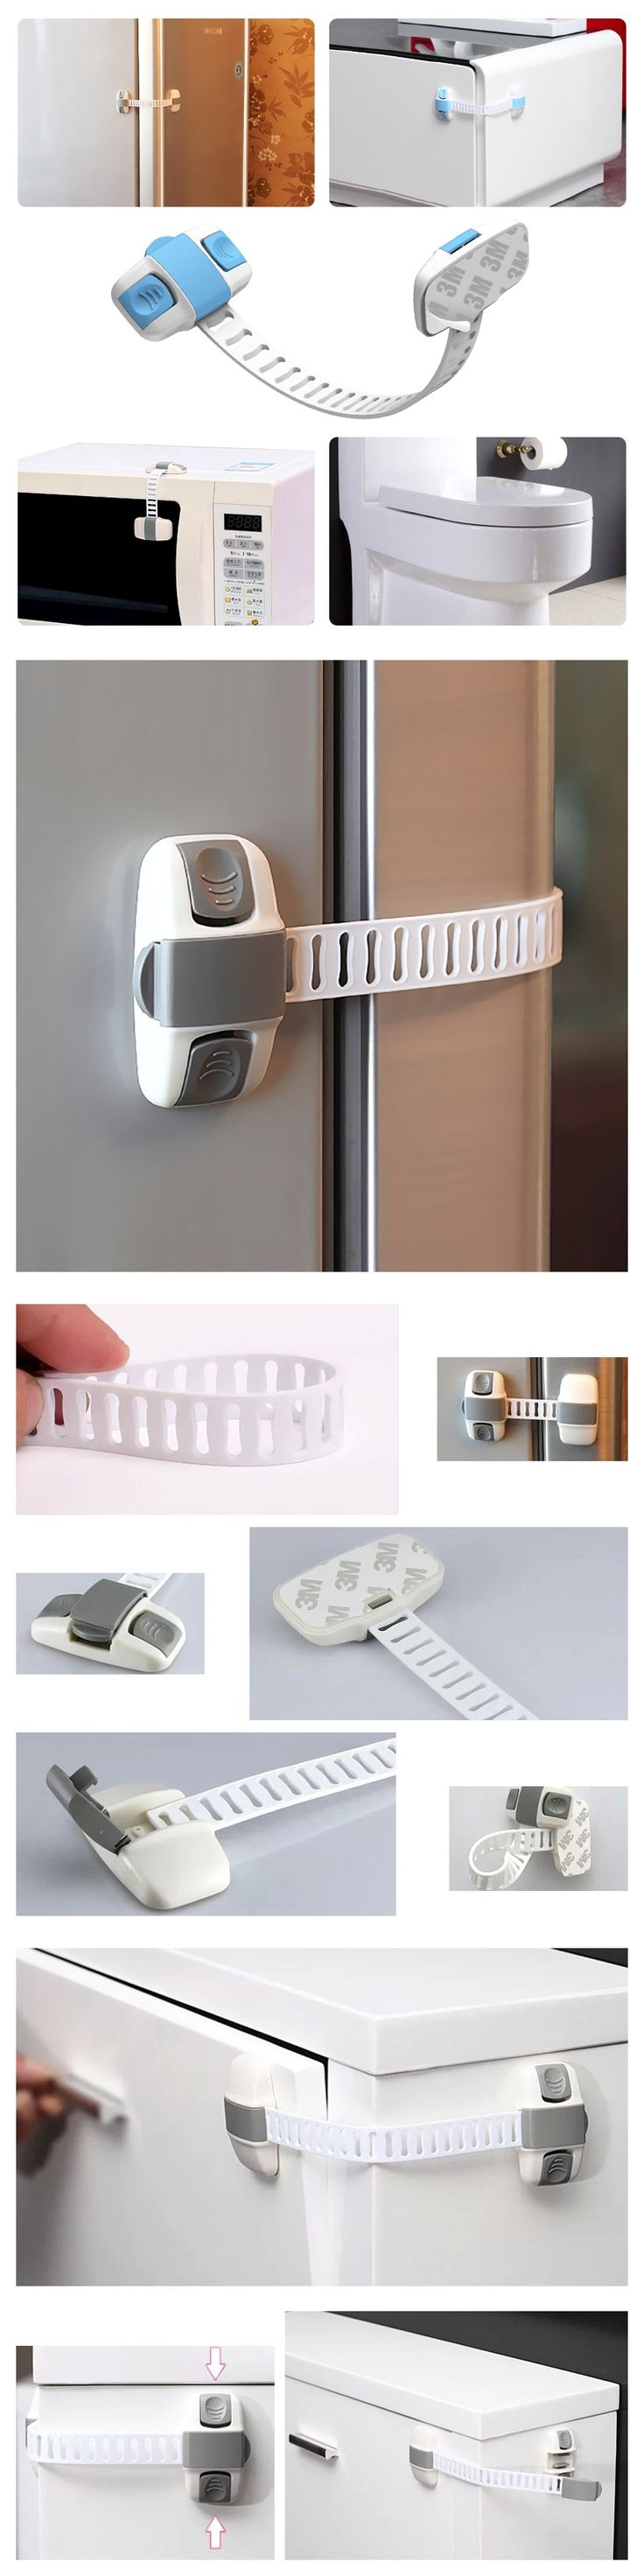 3Pcs/Lot Plastic Baby Safety Refrigerator Lock Adjustable Length Drawer Shoe Bathroom Bucket Cabinet Locks Kids Doors Protection